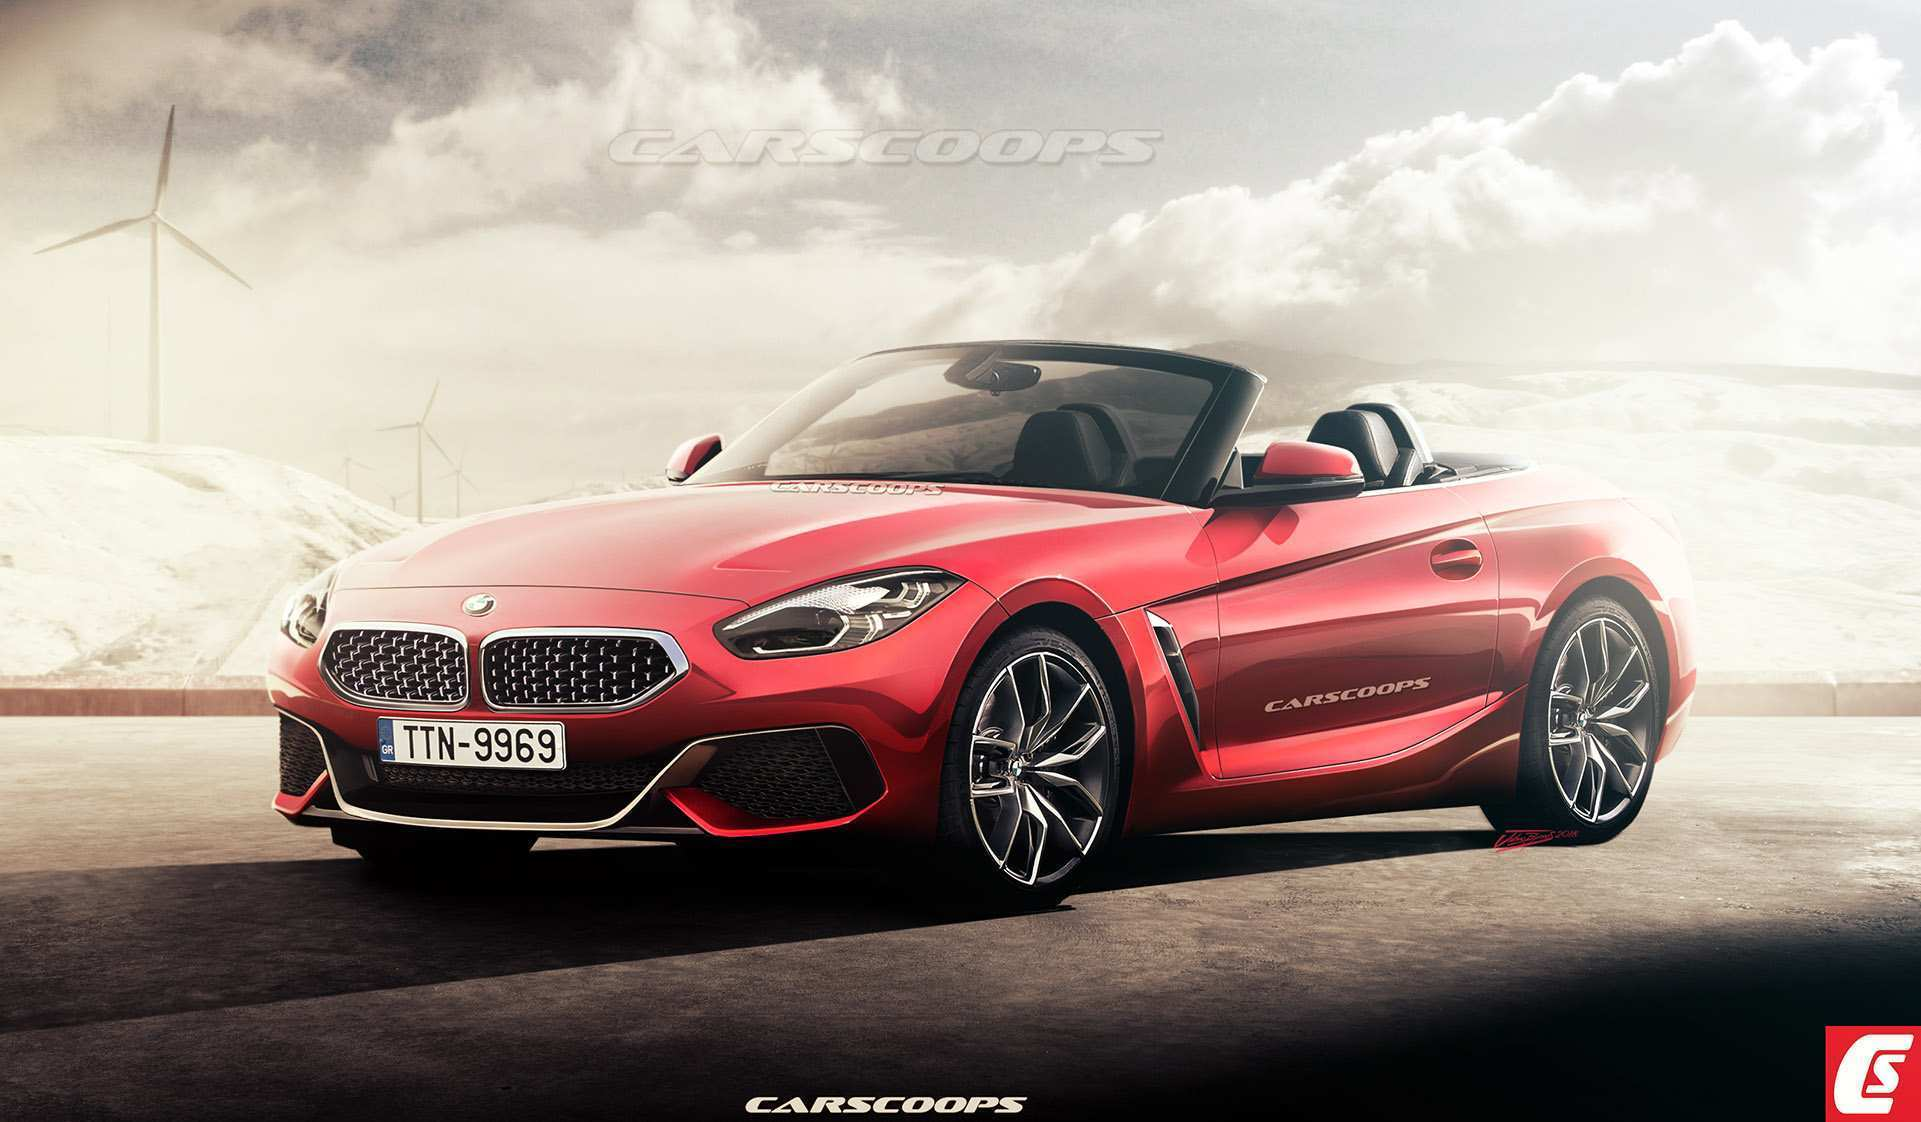 50 All New Best Bmw New Z4 2019 New Release Specs with Best Bmw New Z4 2019 New Release